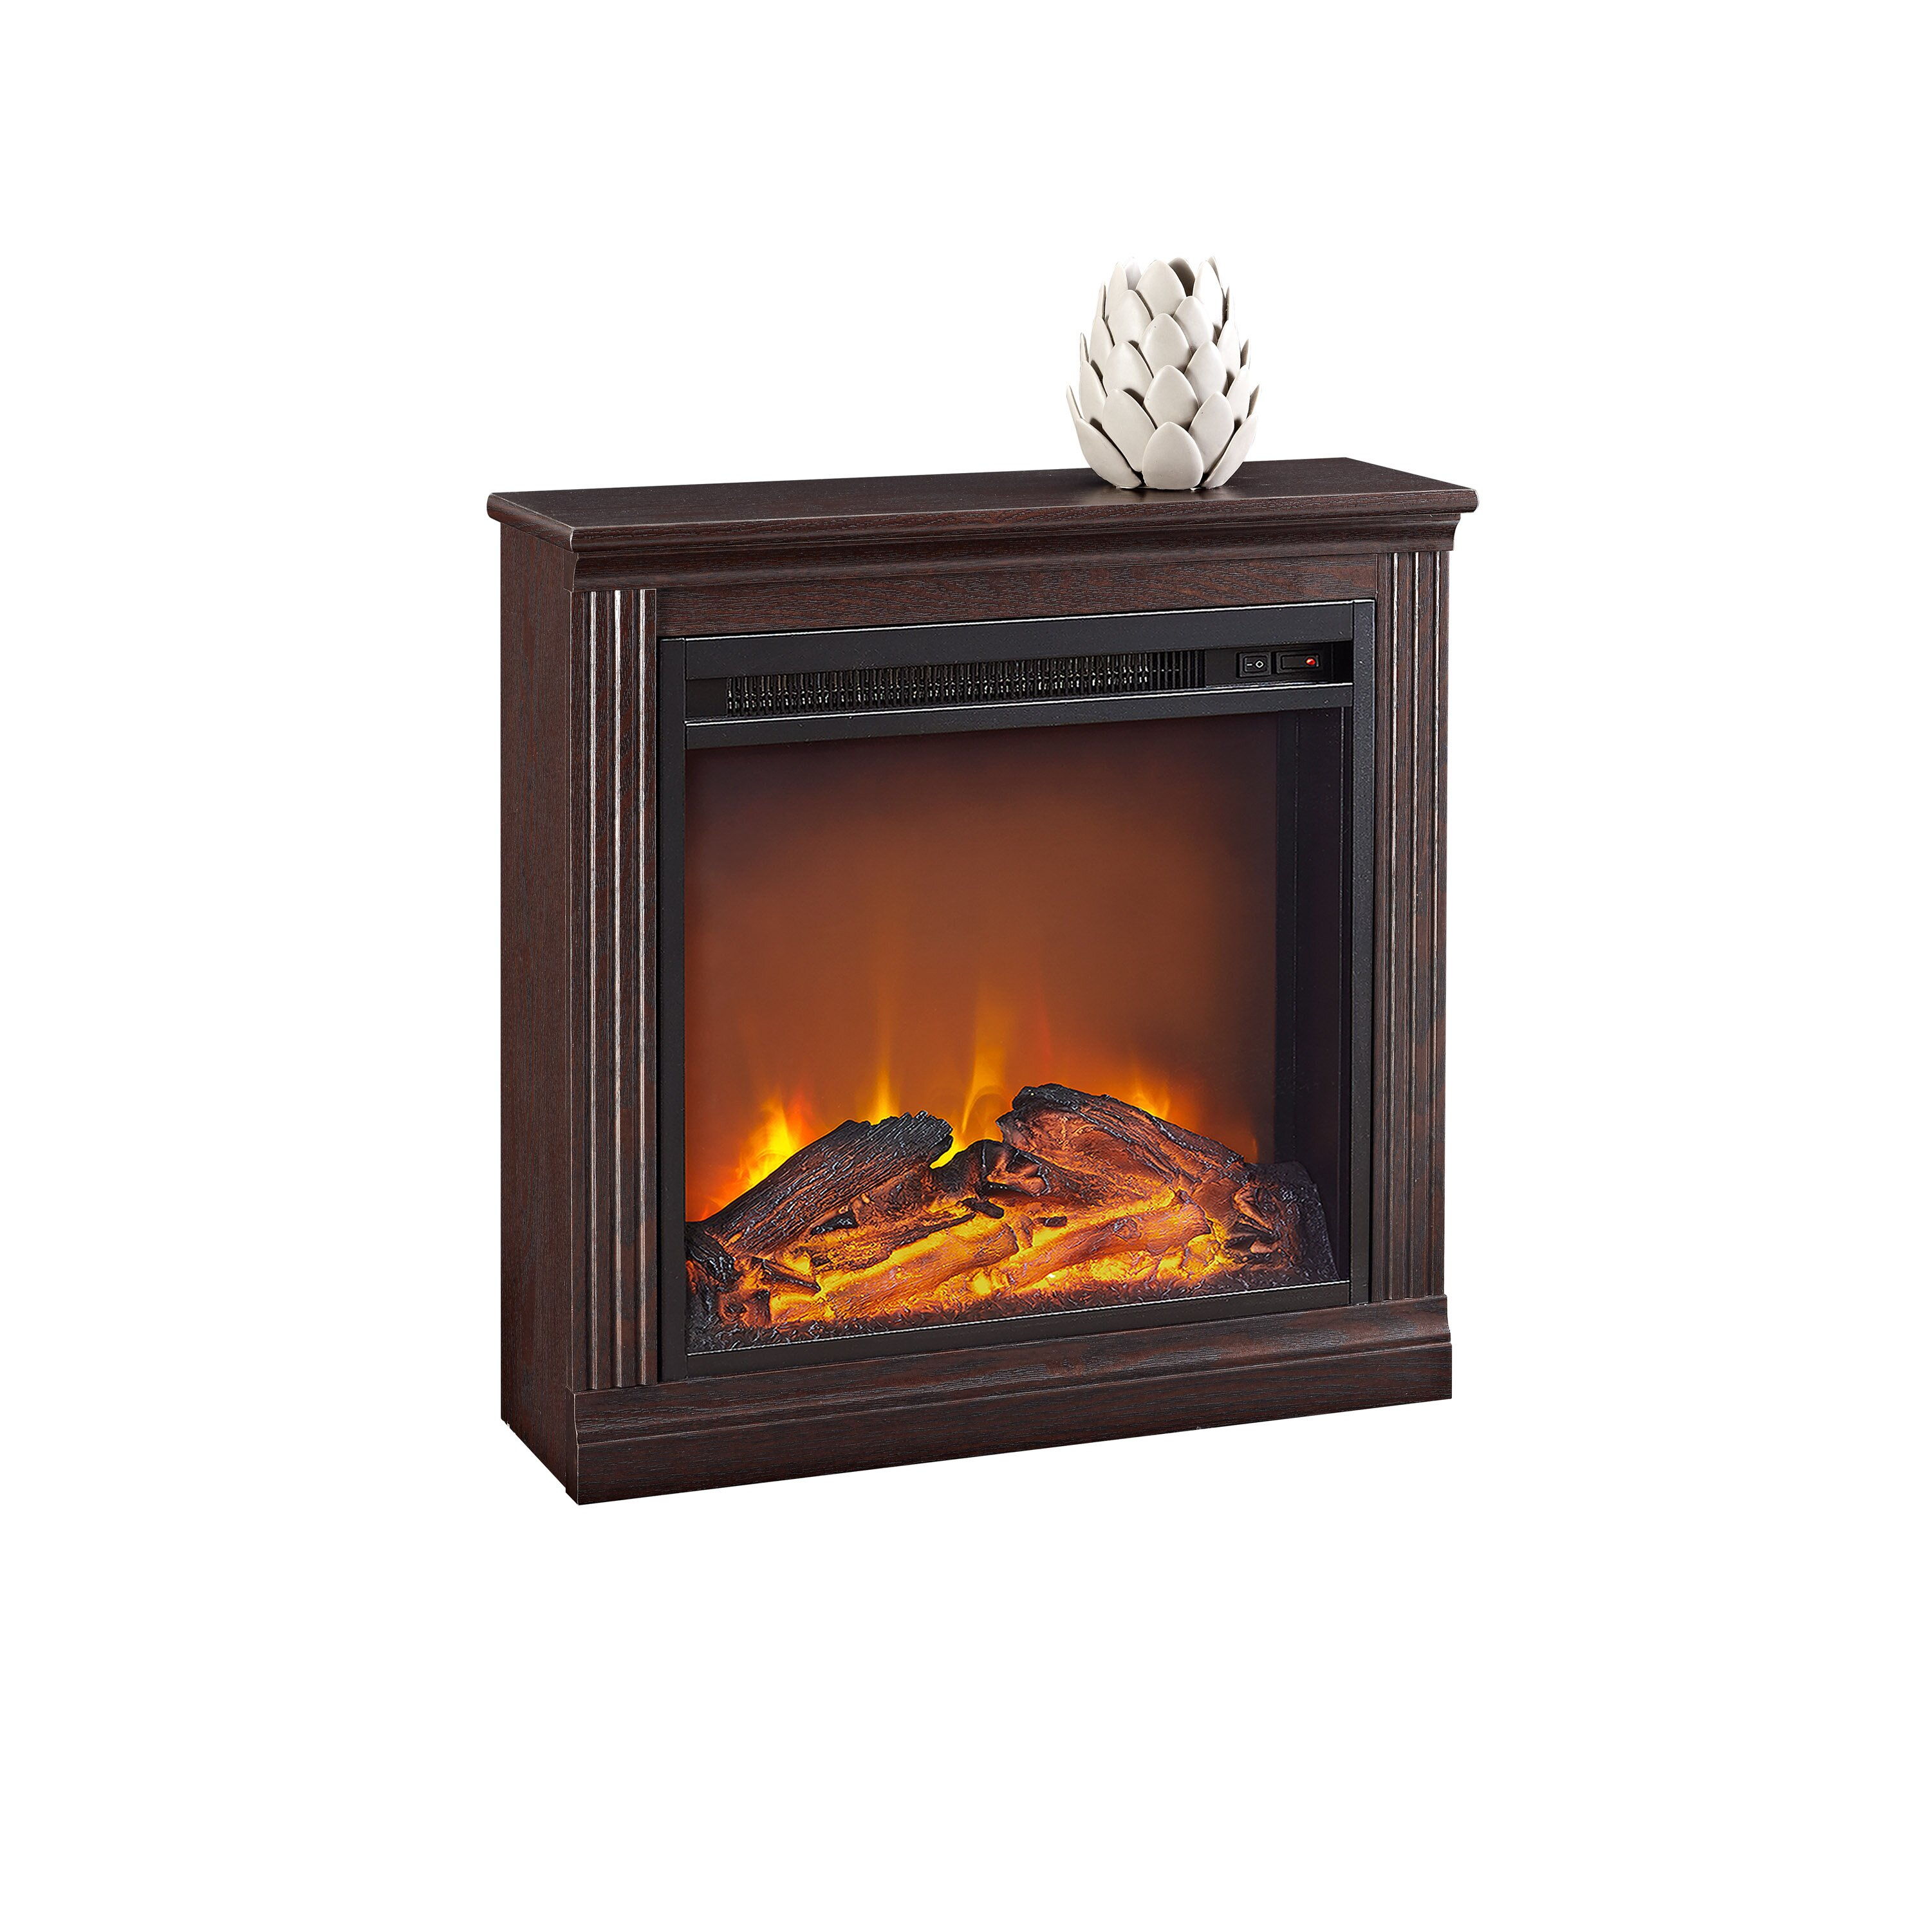 Charlton Home Allensby Simple Electric Fireplace Reviews Wayfair